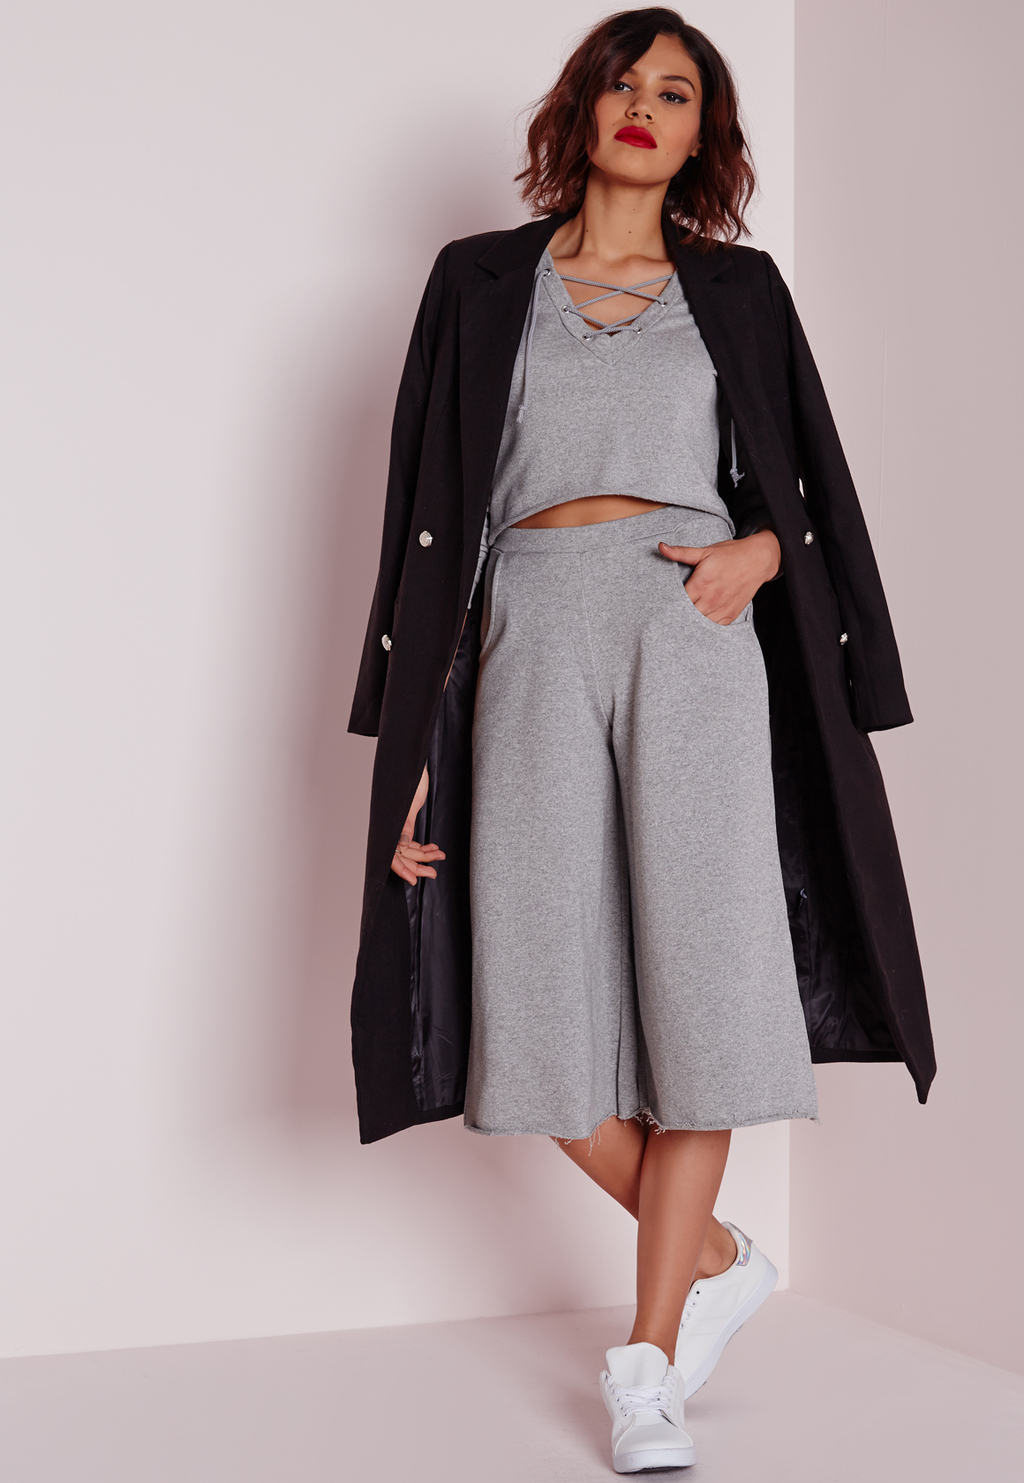 Loop Back Jersey Culottes Grey, Grey - pattern: plain; waist: high rise; predominant colour: light grey; occasions: casual, creative work; fibres: polyester/polyamide - stretch; pattern type: fabric; texture group: jersey - stretchy/drapey; season: a/w 2015; style: culotte; length: below the knee; fit: a-line